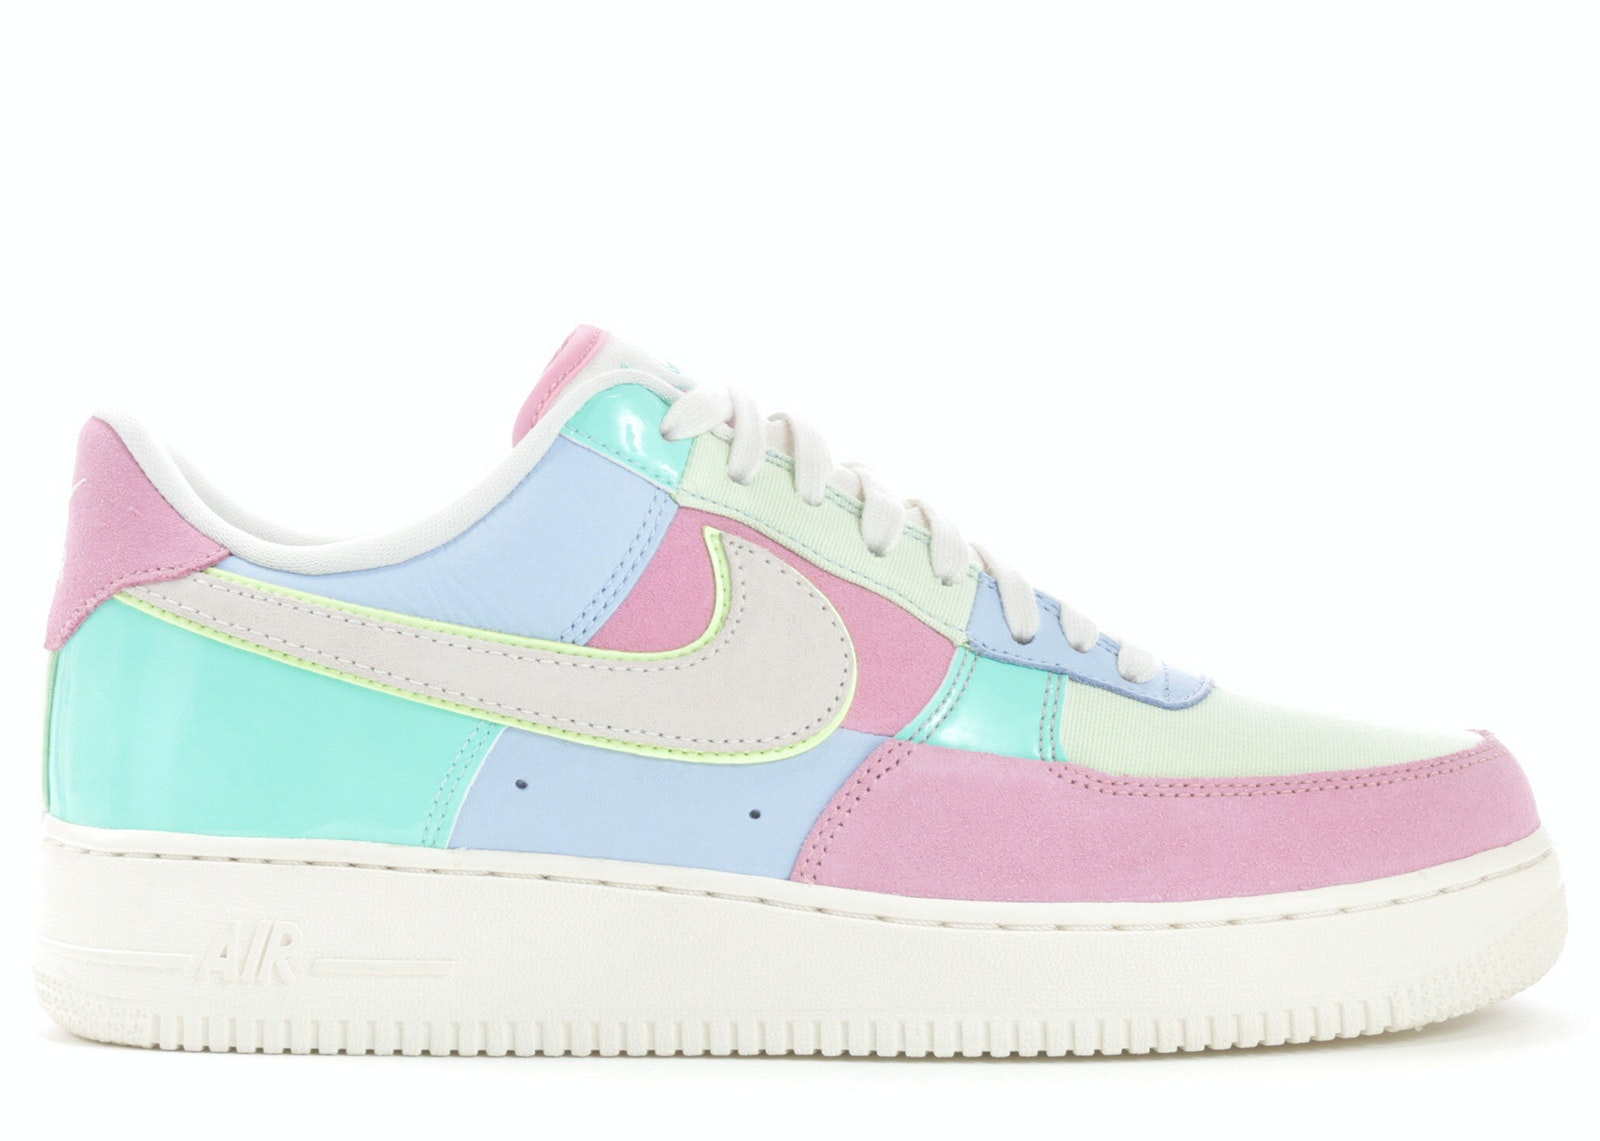 Air Force 1 Low Easter (2018)